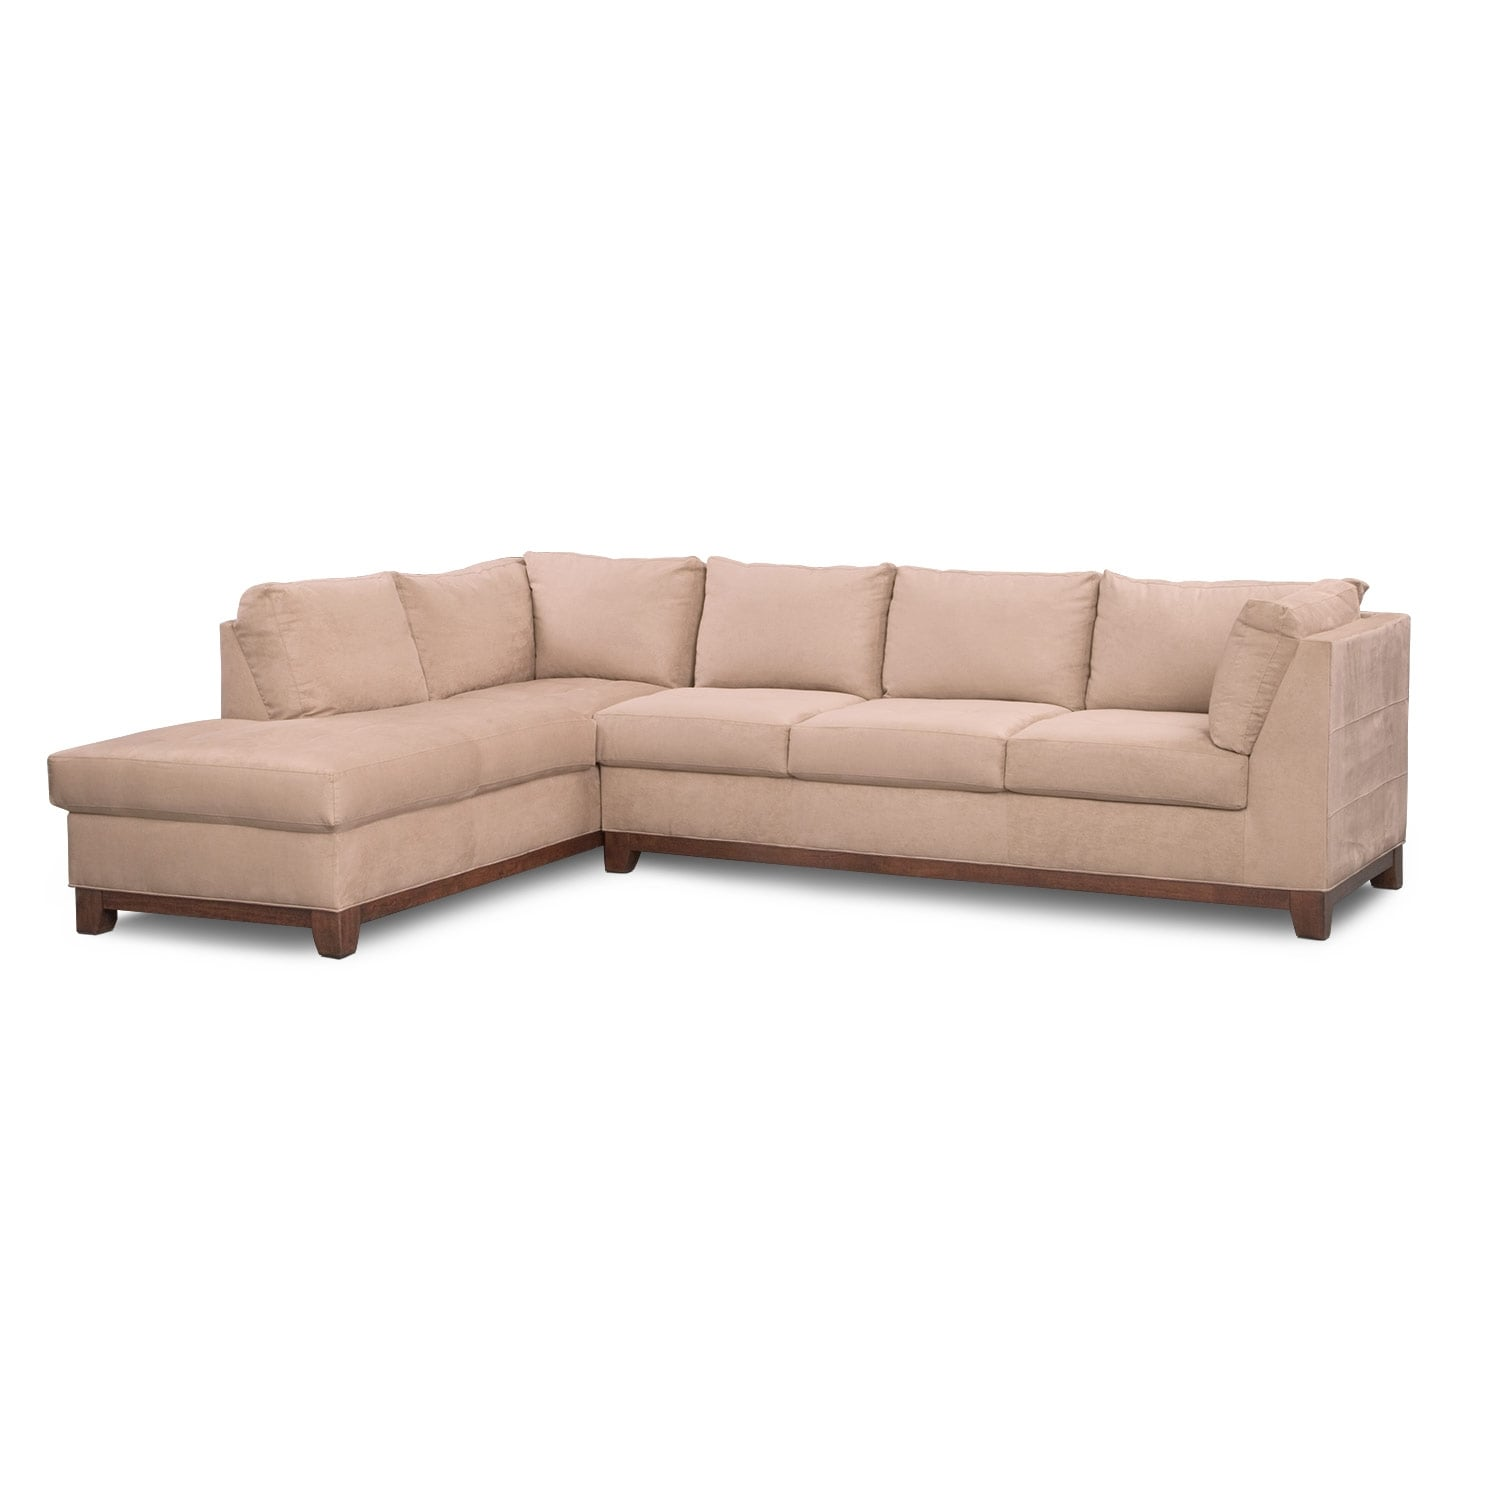 Soho 2 piece sectional with left facing chaise for Apartment sectional with chaise